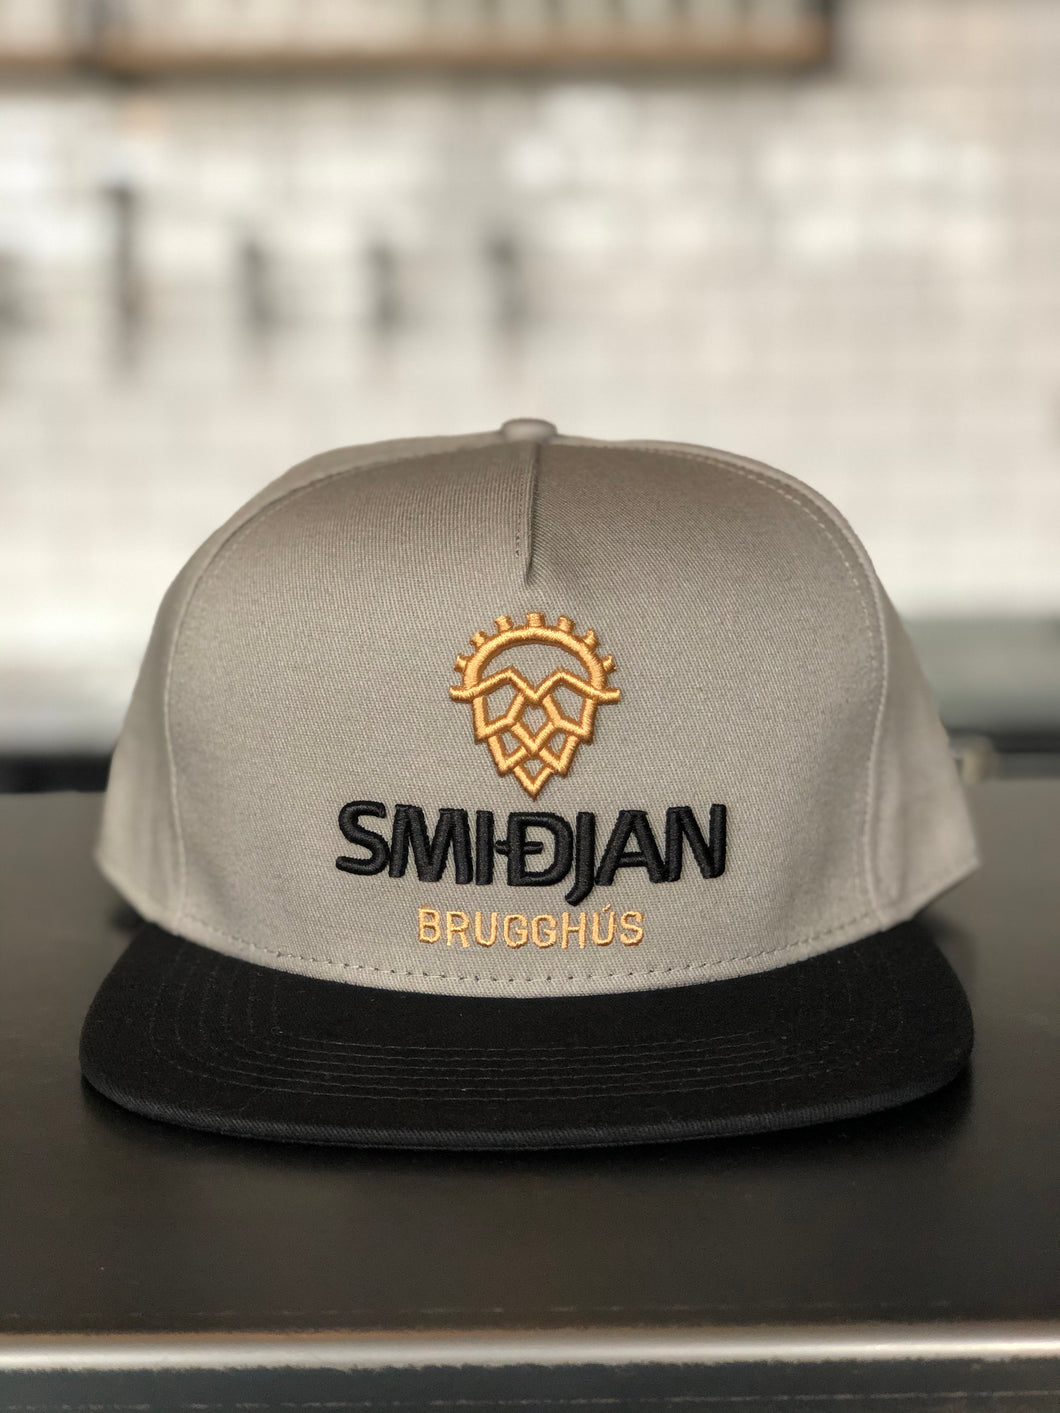 Grey and black Snapback - Smidjan Brugghus